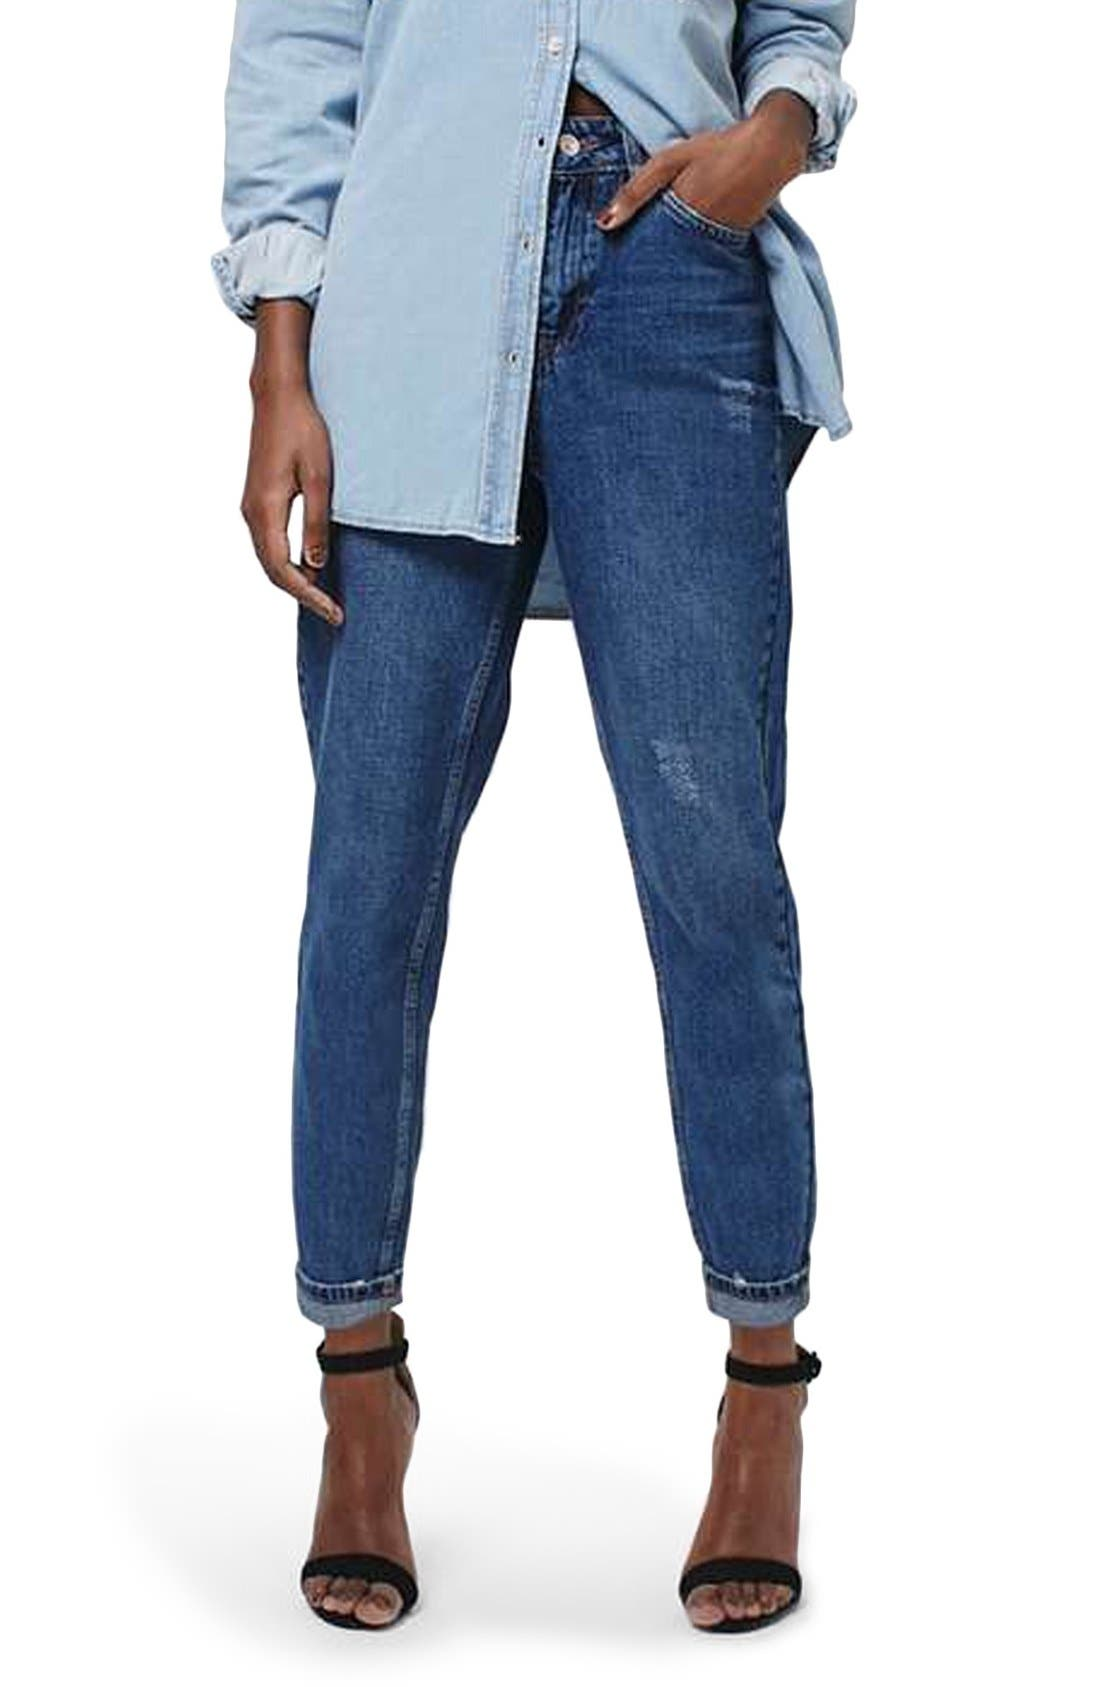 Alternate Image 1 Selected - Topshop 'Mom' High Rise Jeans (Petite)